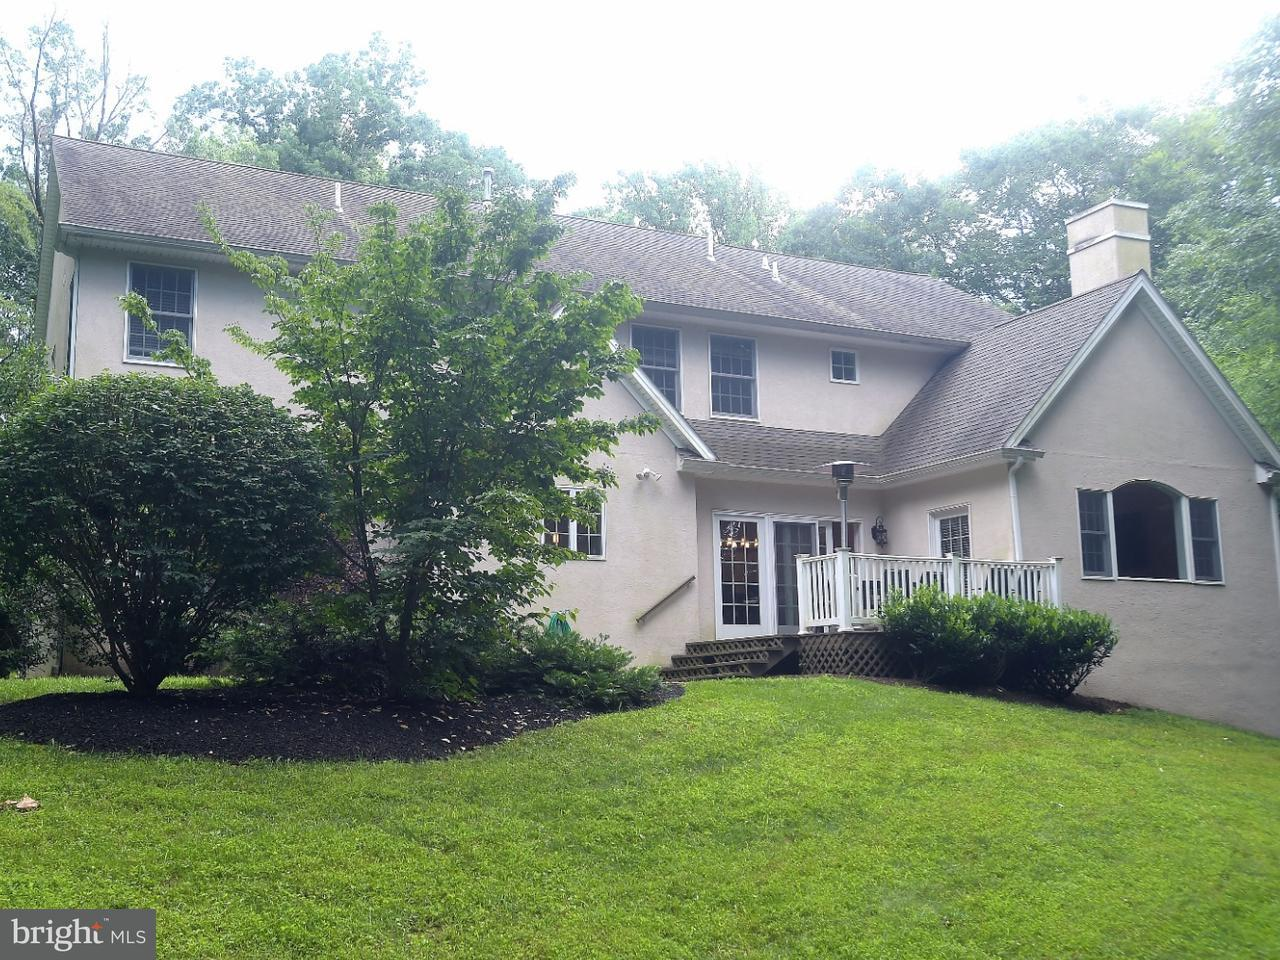 361 W Corrine West Chester , PA 19382